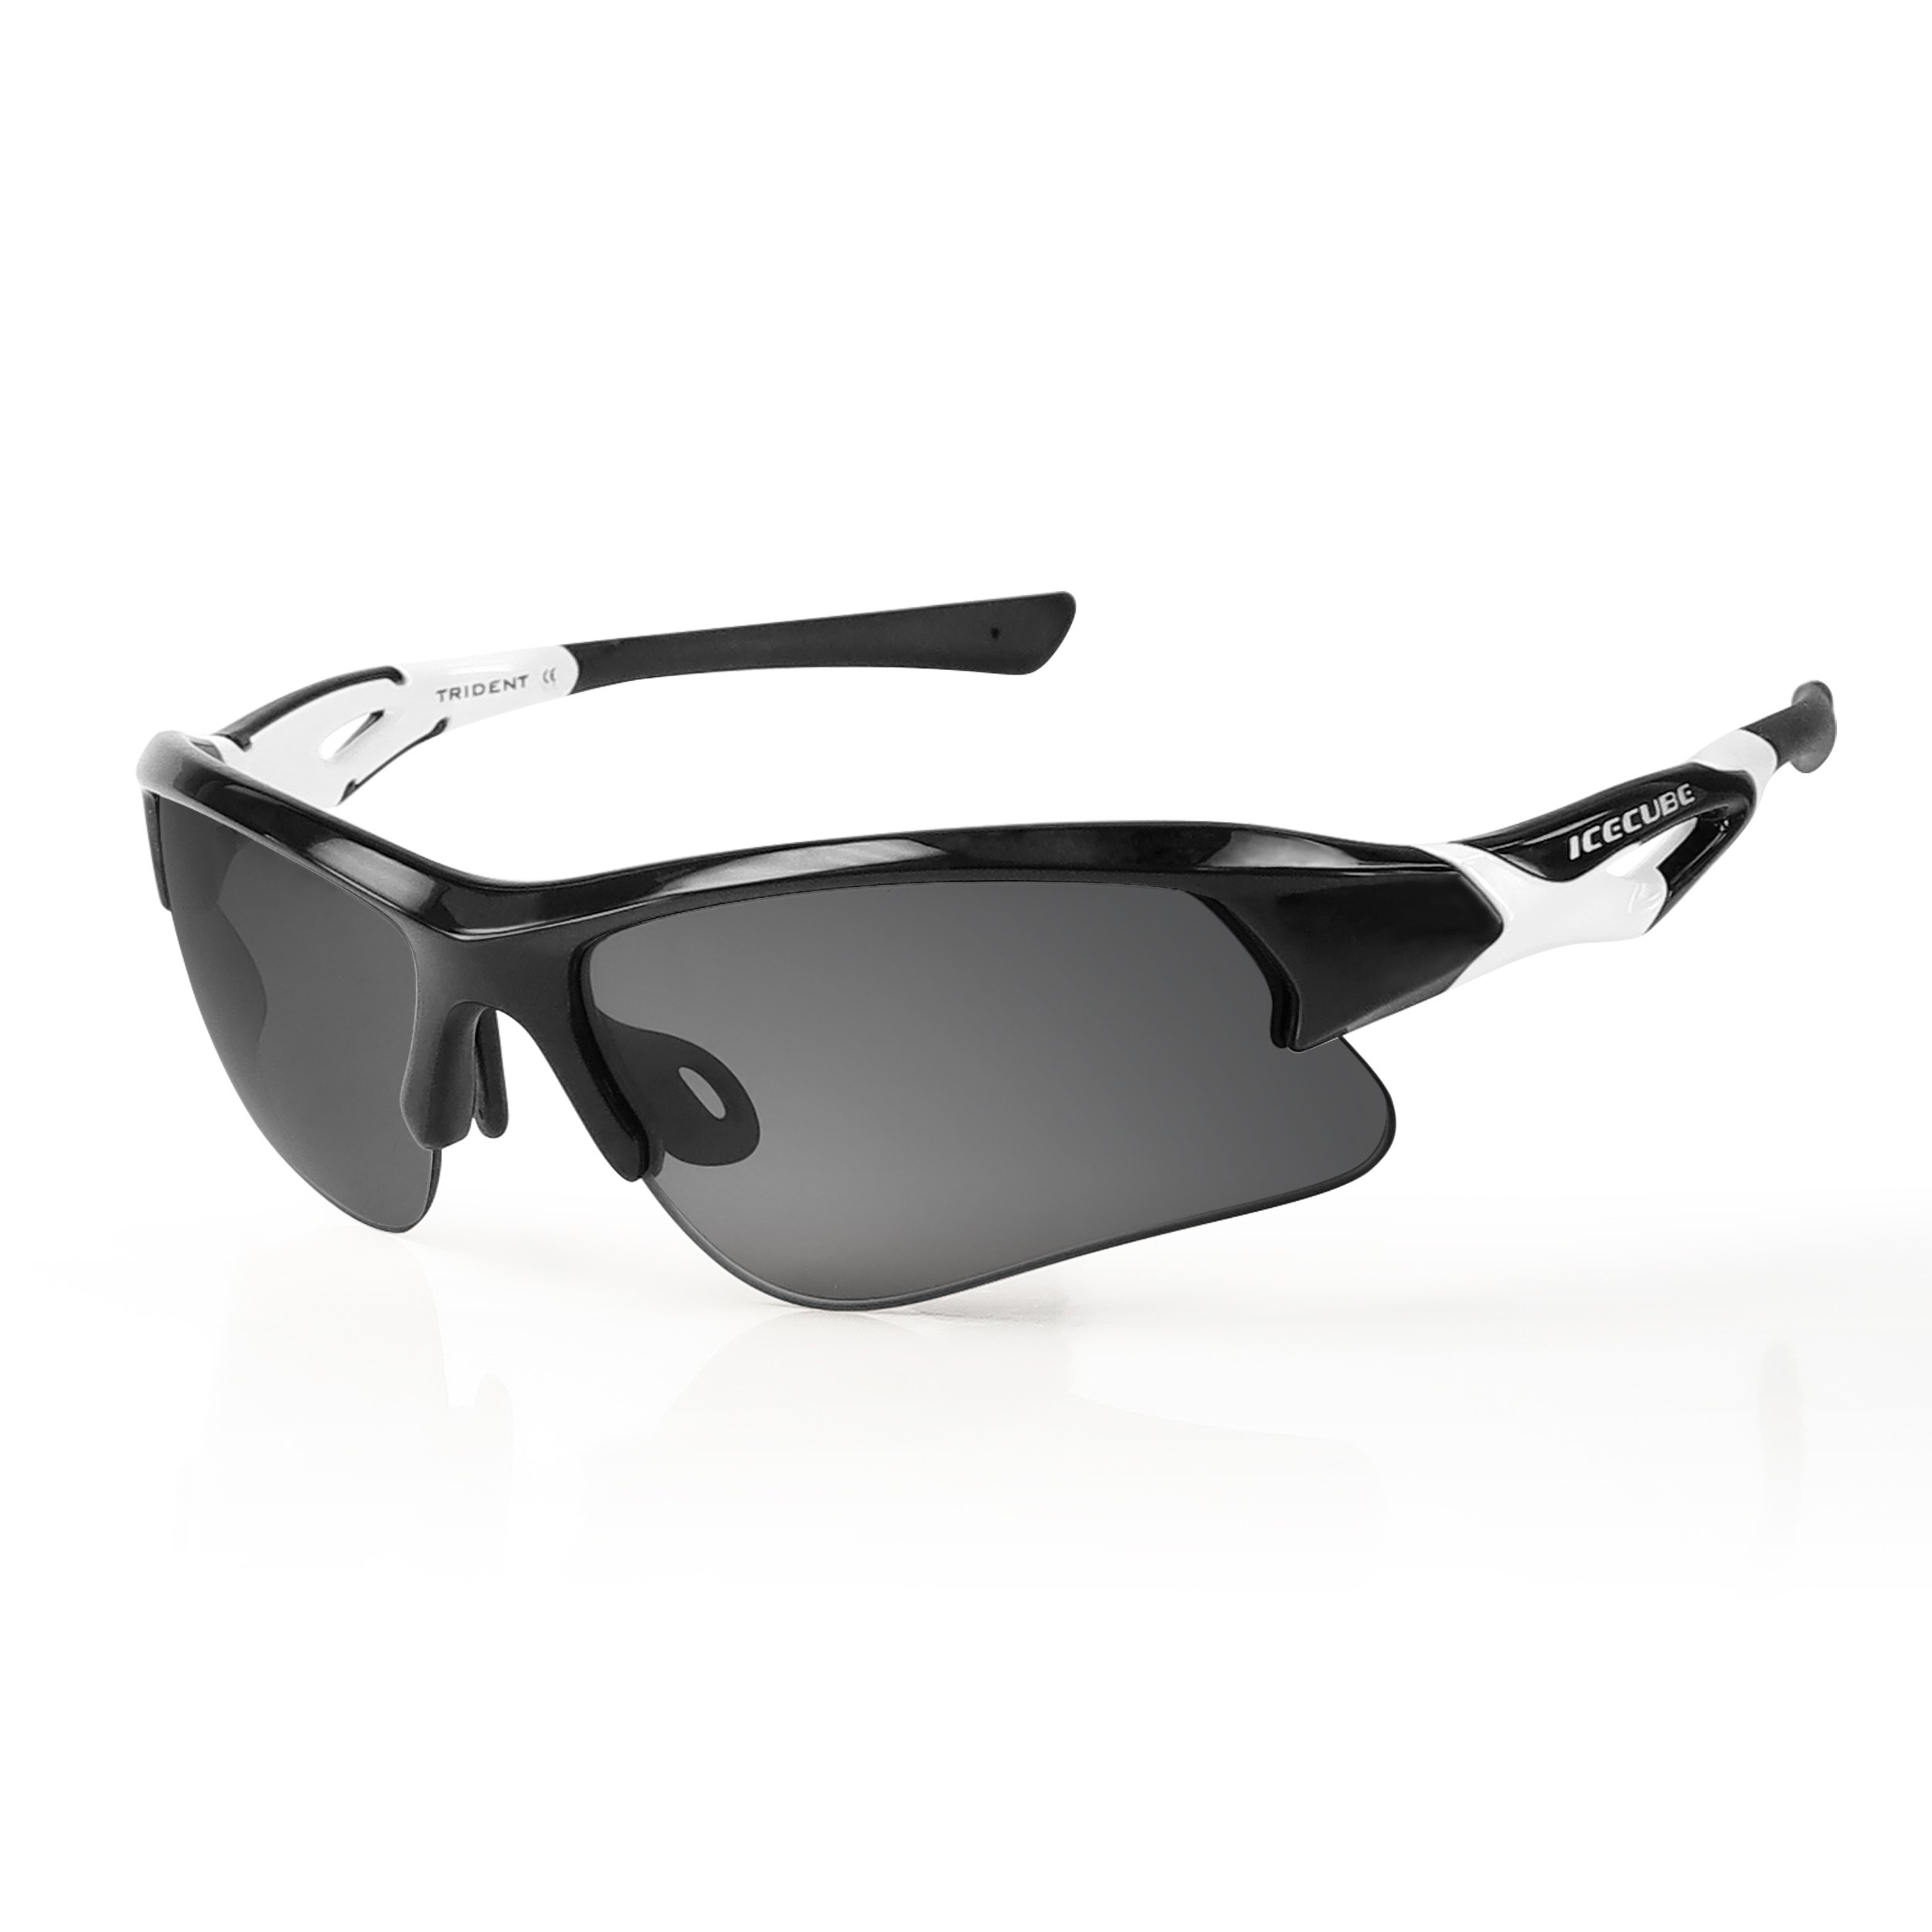 Icecube Unisex Asian Fit Photochromic Polarized Sports Sunglasses | UV Protection | TR90 Ultra Light | Suitable for Running, Driving, Beach, Fishing - TRIDENT (BLK / WHT, Grey Polarized)